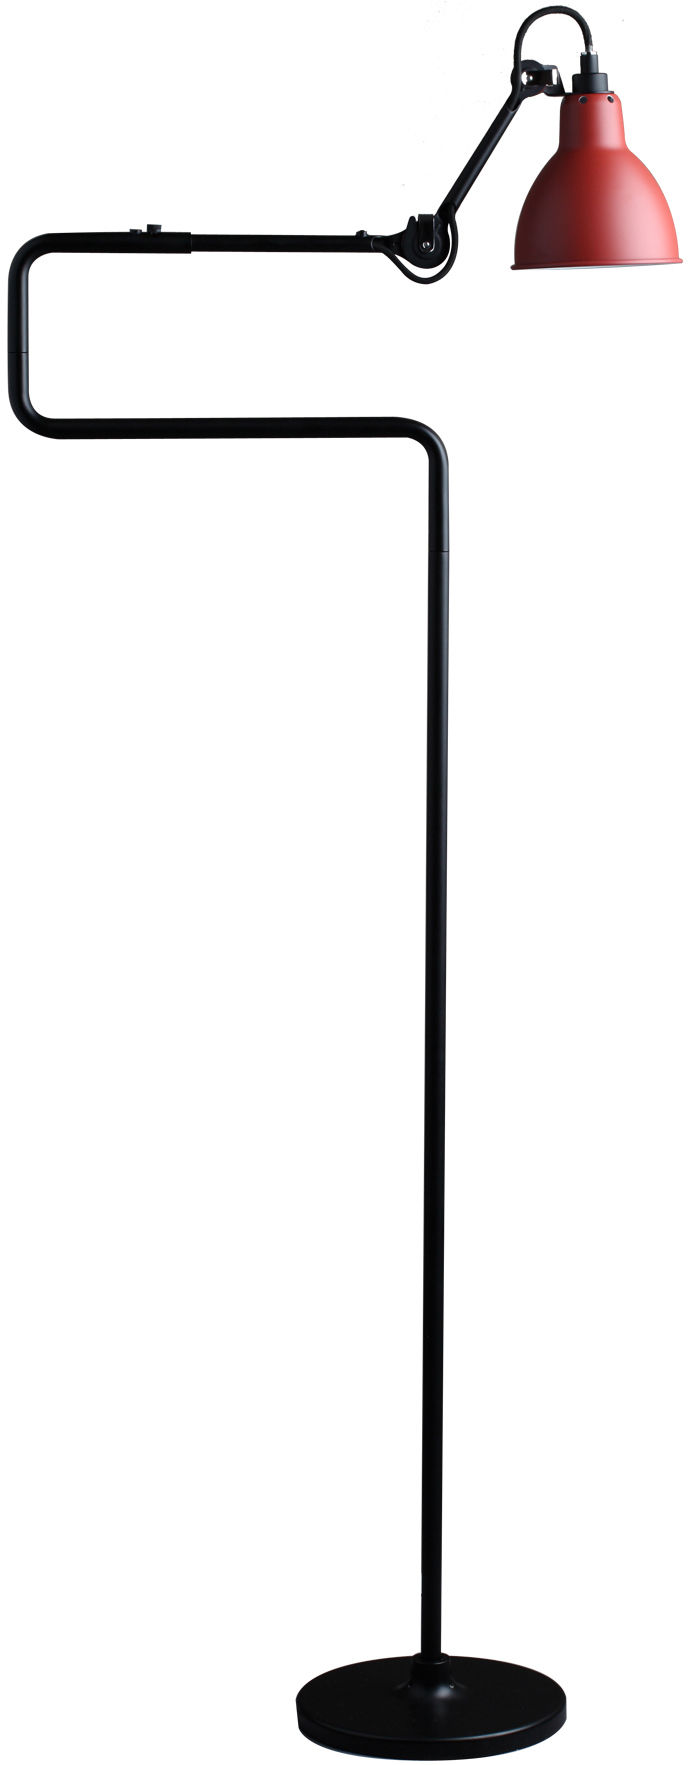 Lighting - Floor lamps - N°411 Small reading lamp - H 138 cm by DCW éditions - Red diffuser / Black structure - Steel